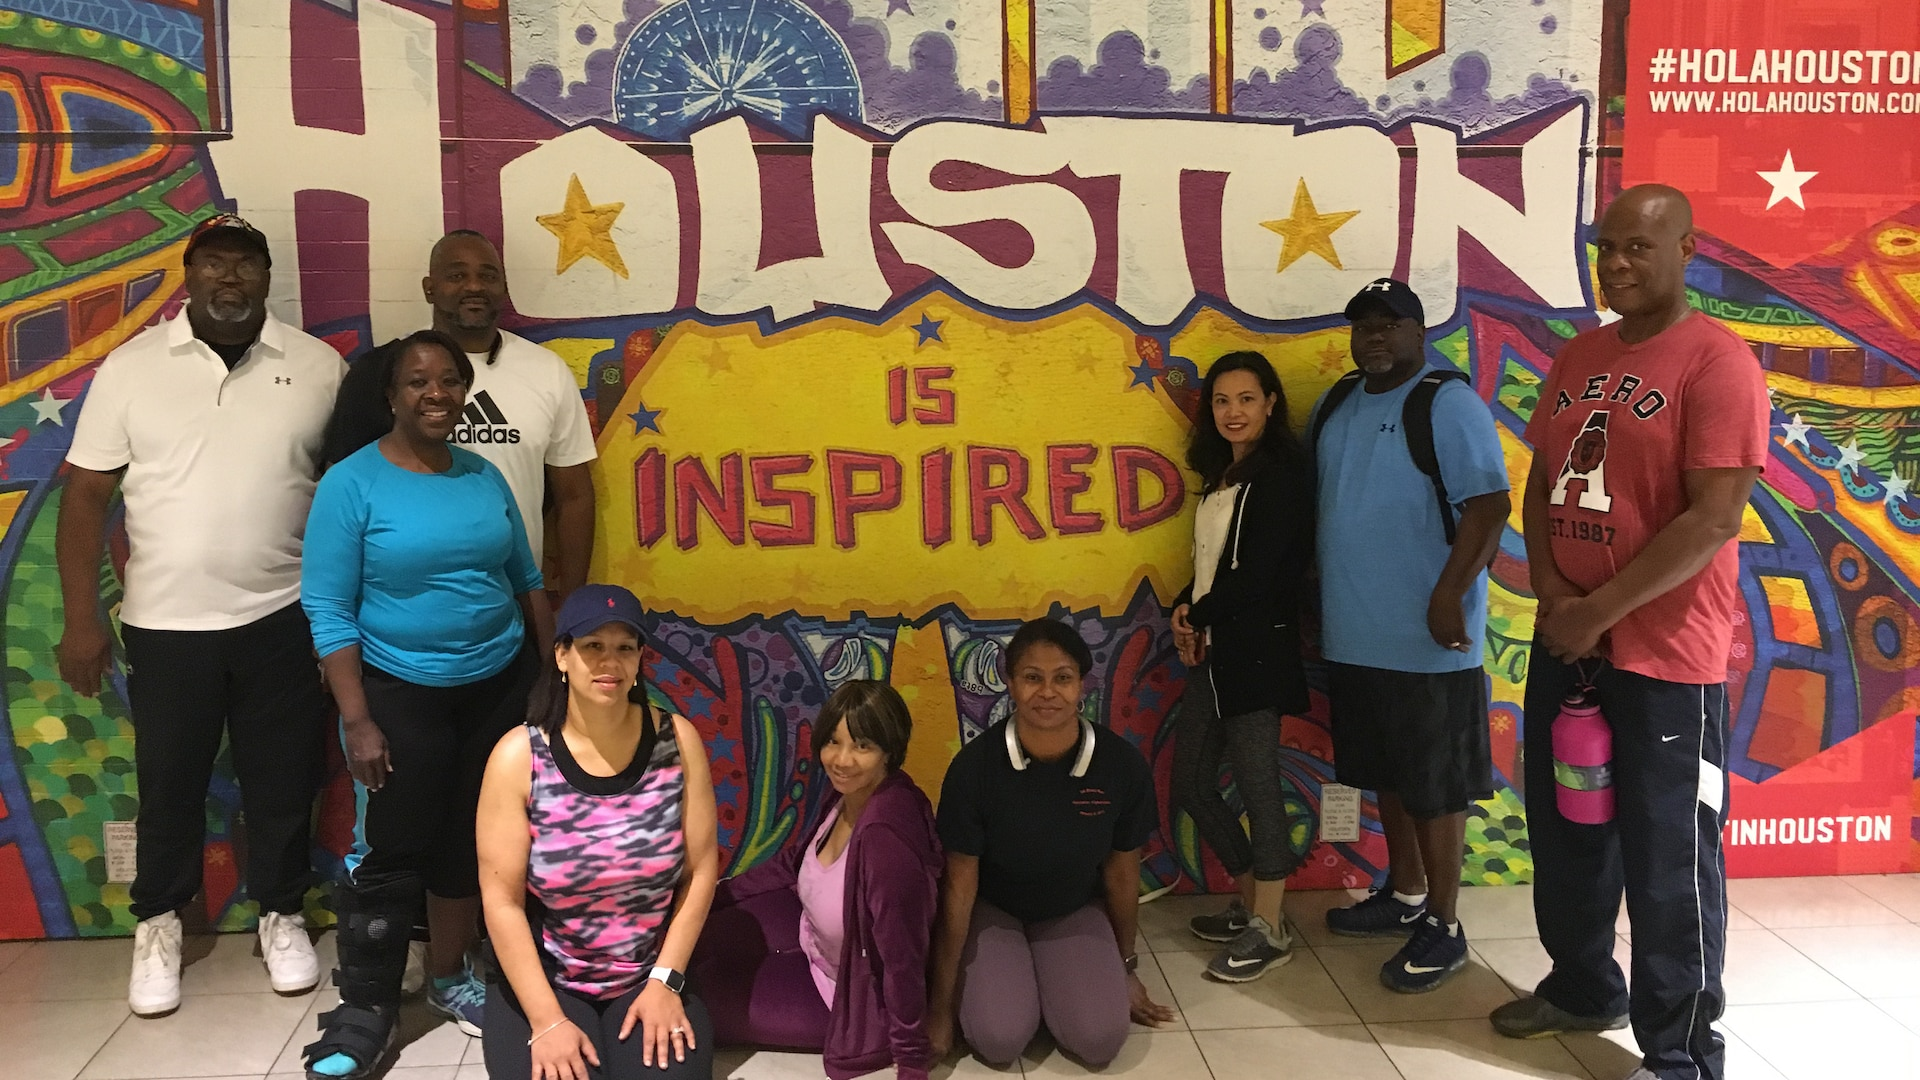 Members of the Defense Contract Management Agency International Region conduct the 2018 Walk to Wellness 5K in The Galleria mall Houston, Texas on May 2. This was the first walk the group conducted in an indoor setting, which allowed all employees to safely participate. (DCMA photo by Johanna Akinfenwa)